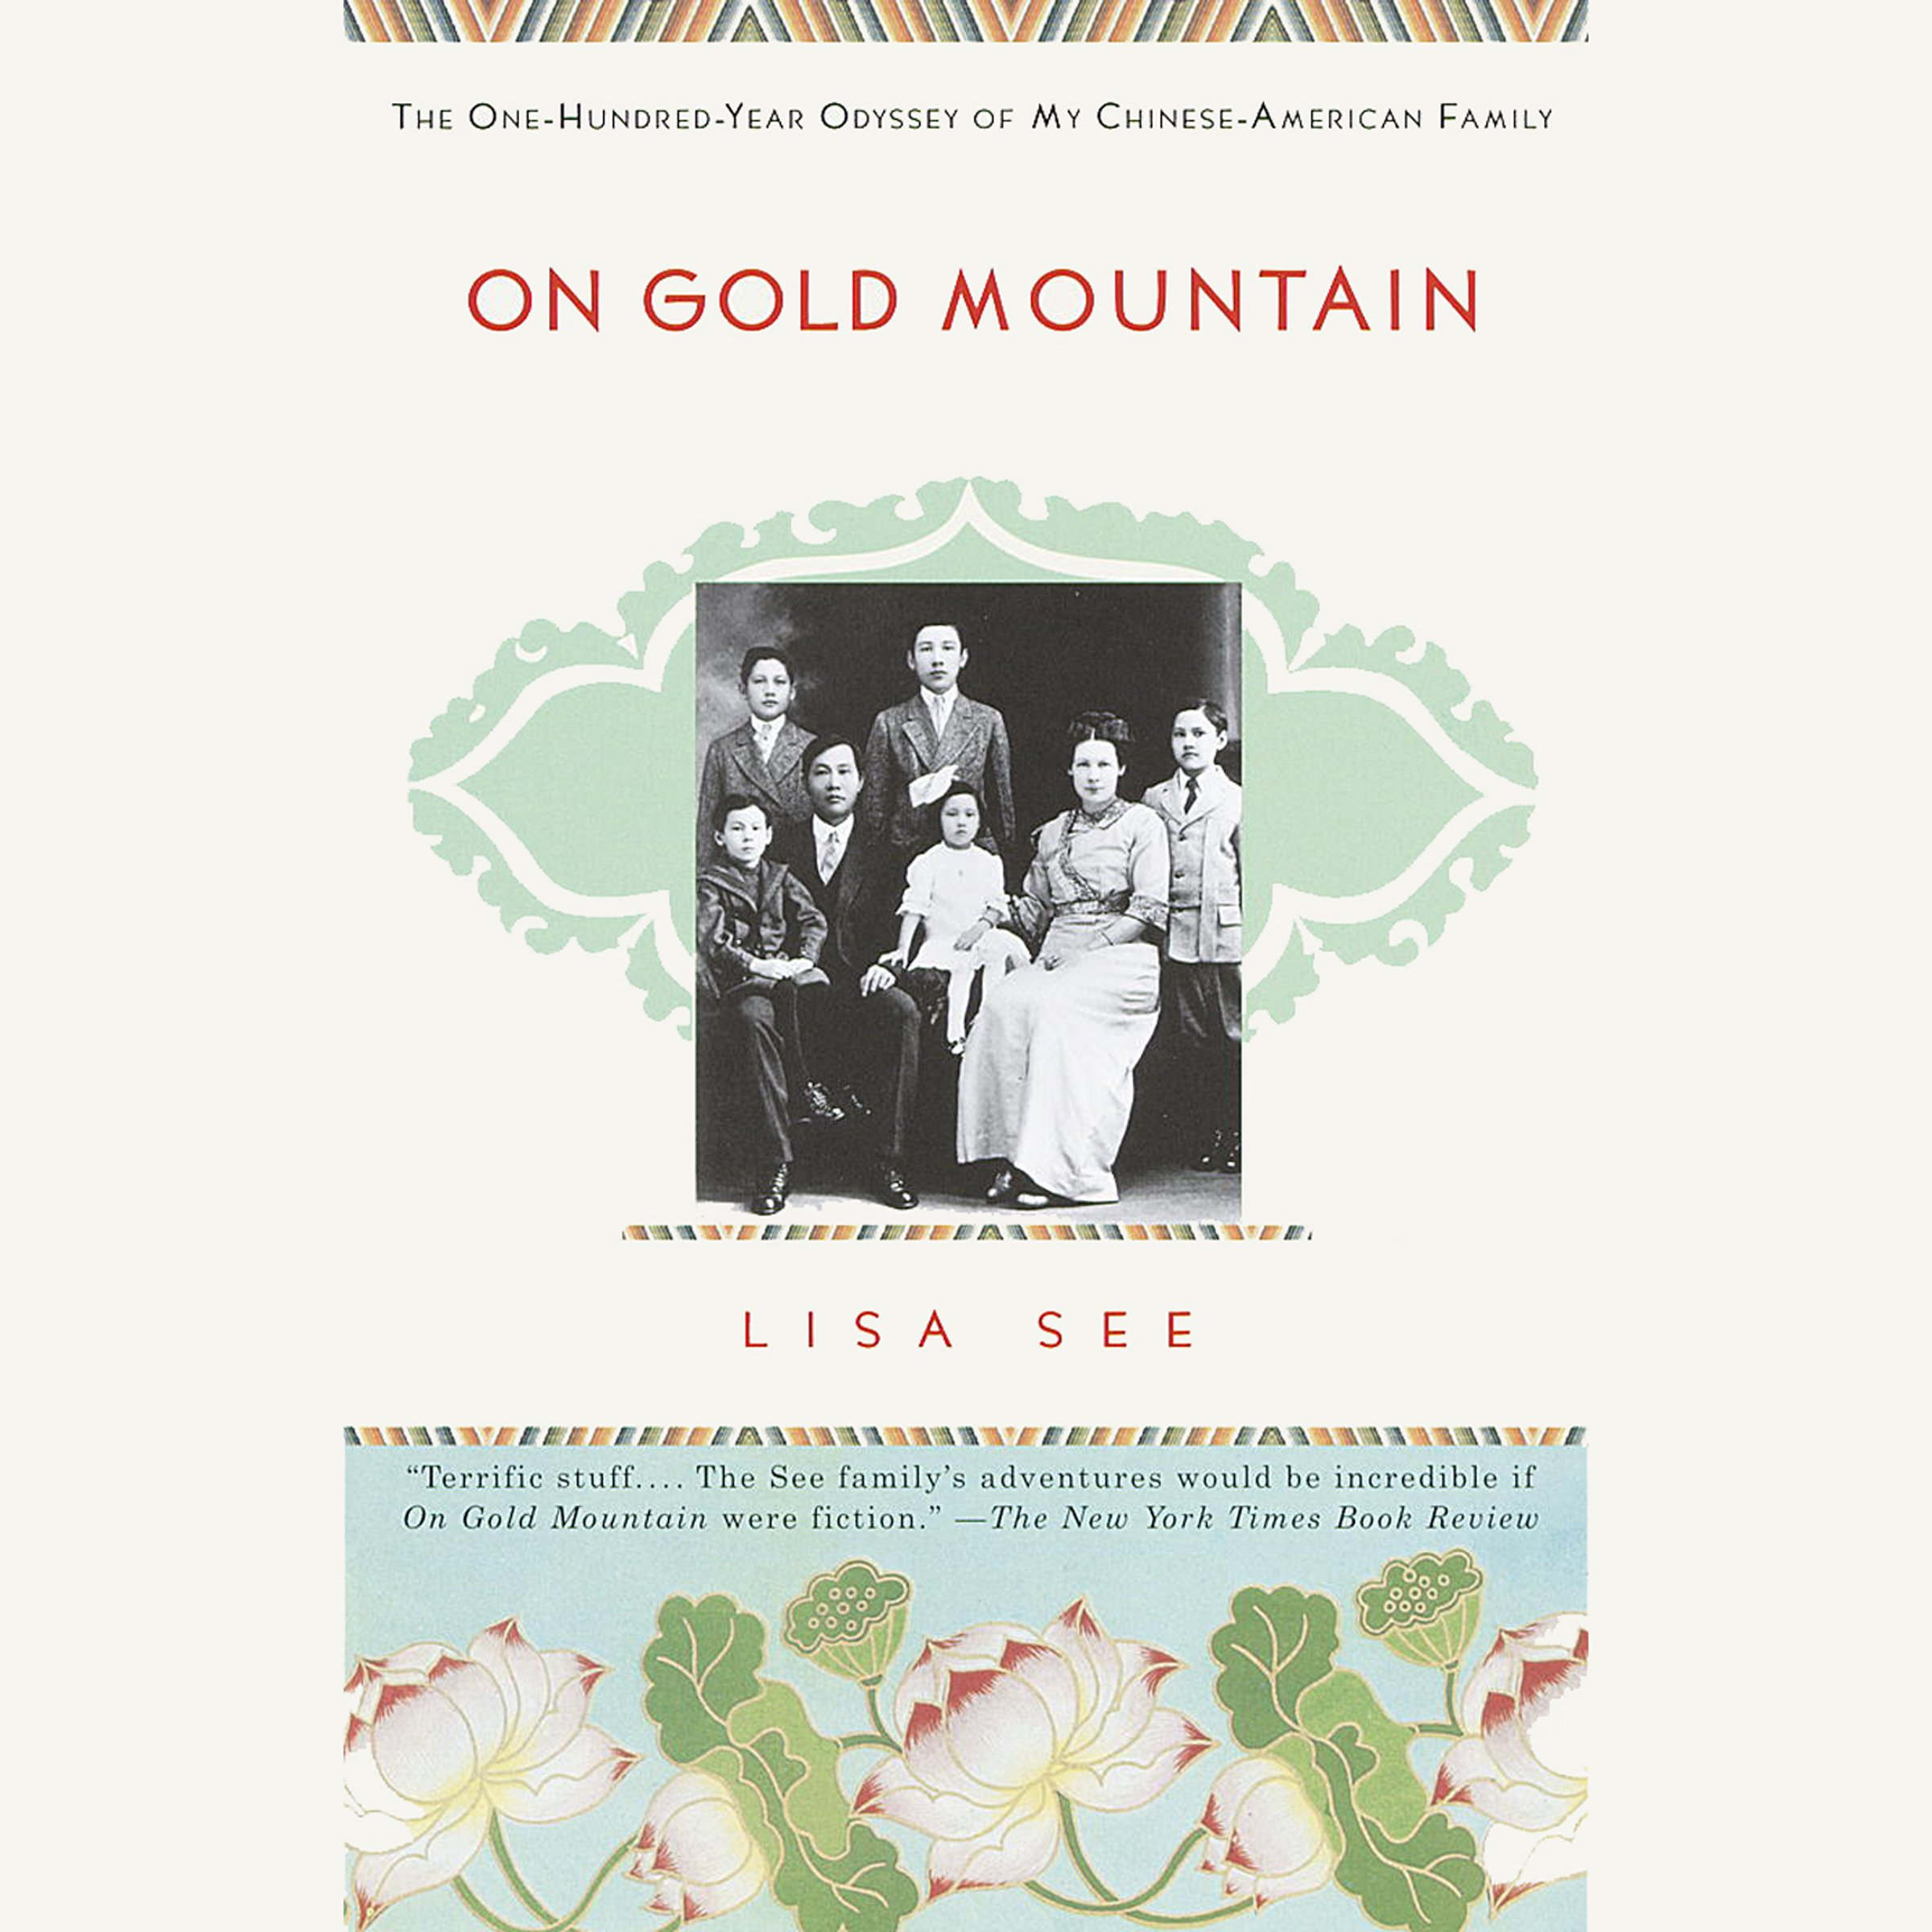 On Gold Mountain: The One-Hundred-Year Odyssey of My Chinese-American Family